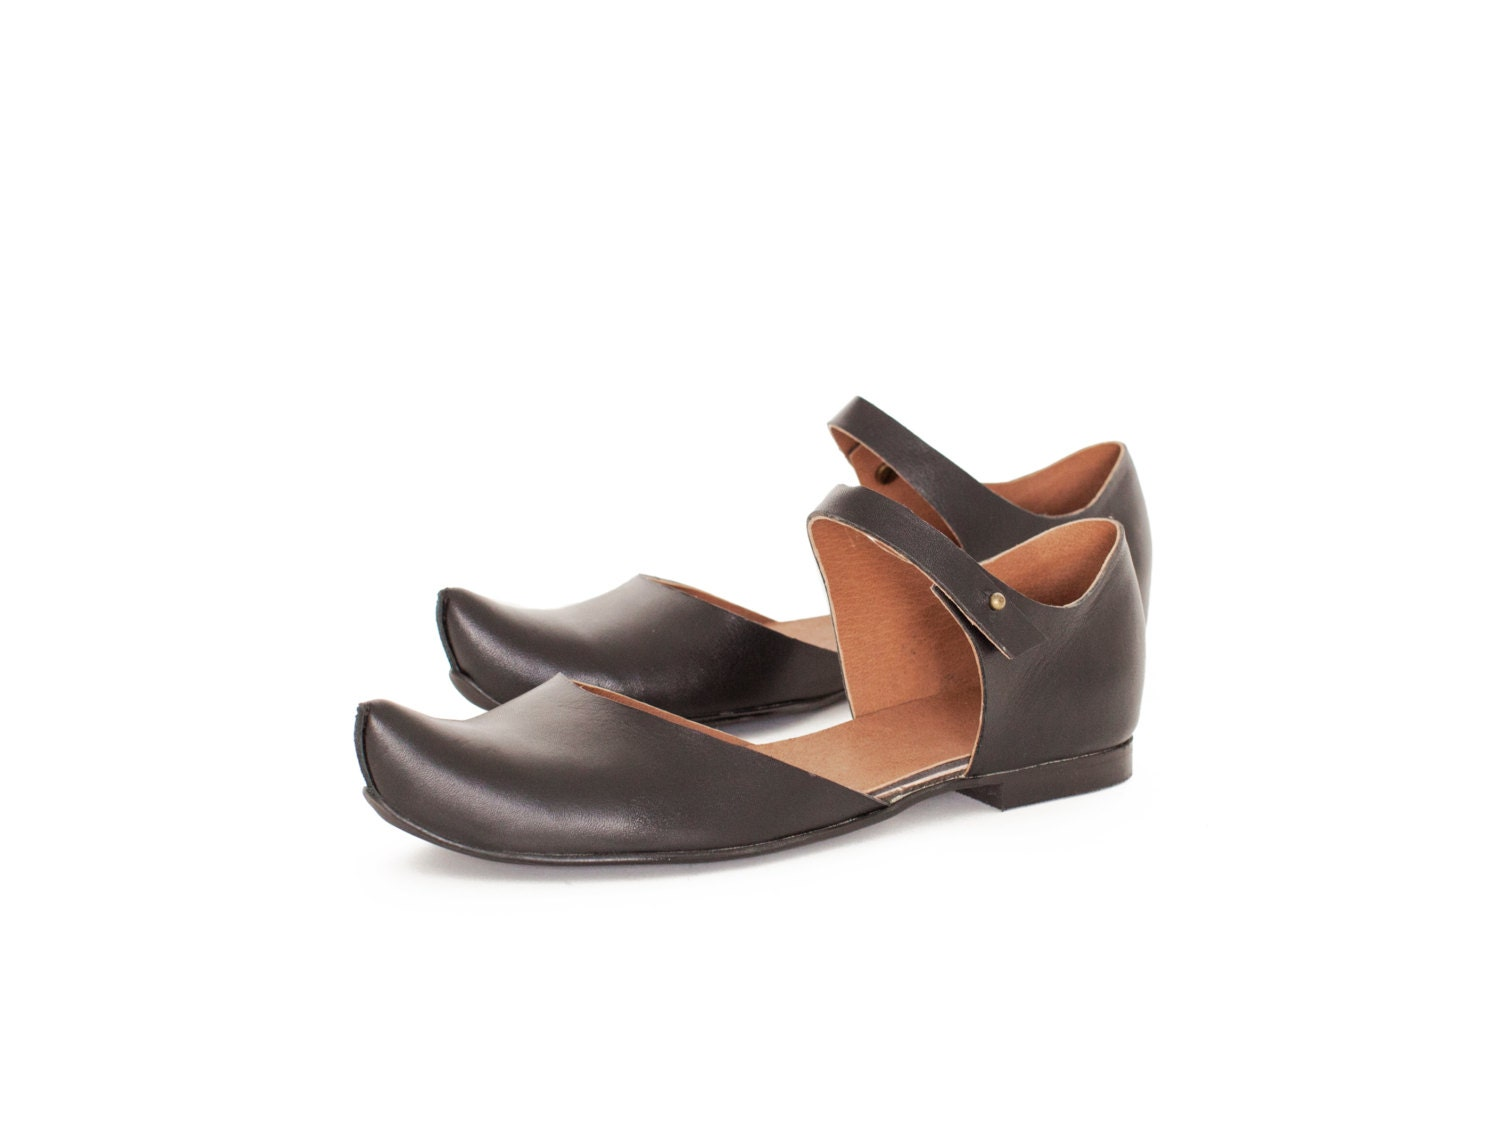 Womens sandals etsy - 40 Sale Pointy Flats Leather Shoes Womens Shoes Leather Sandals Women